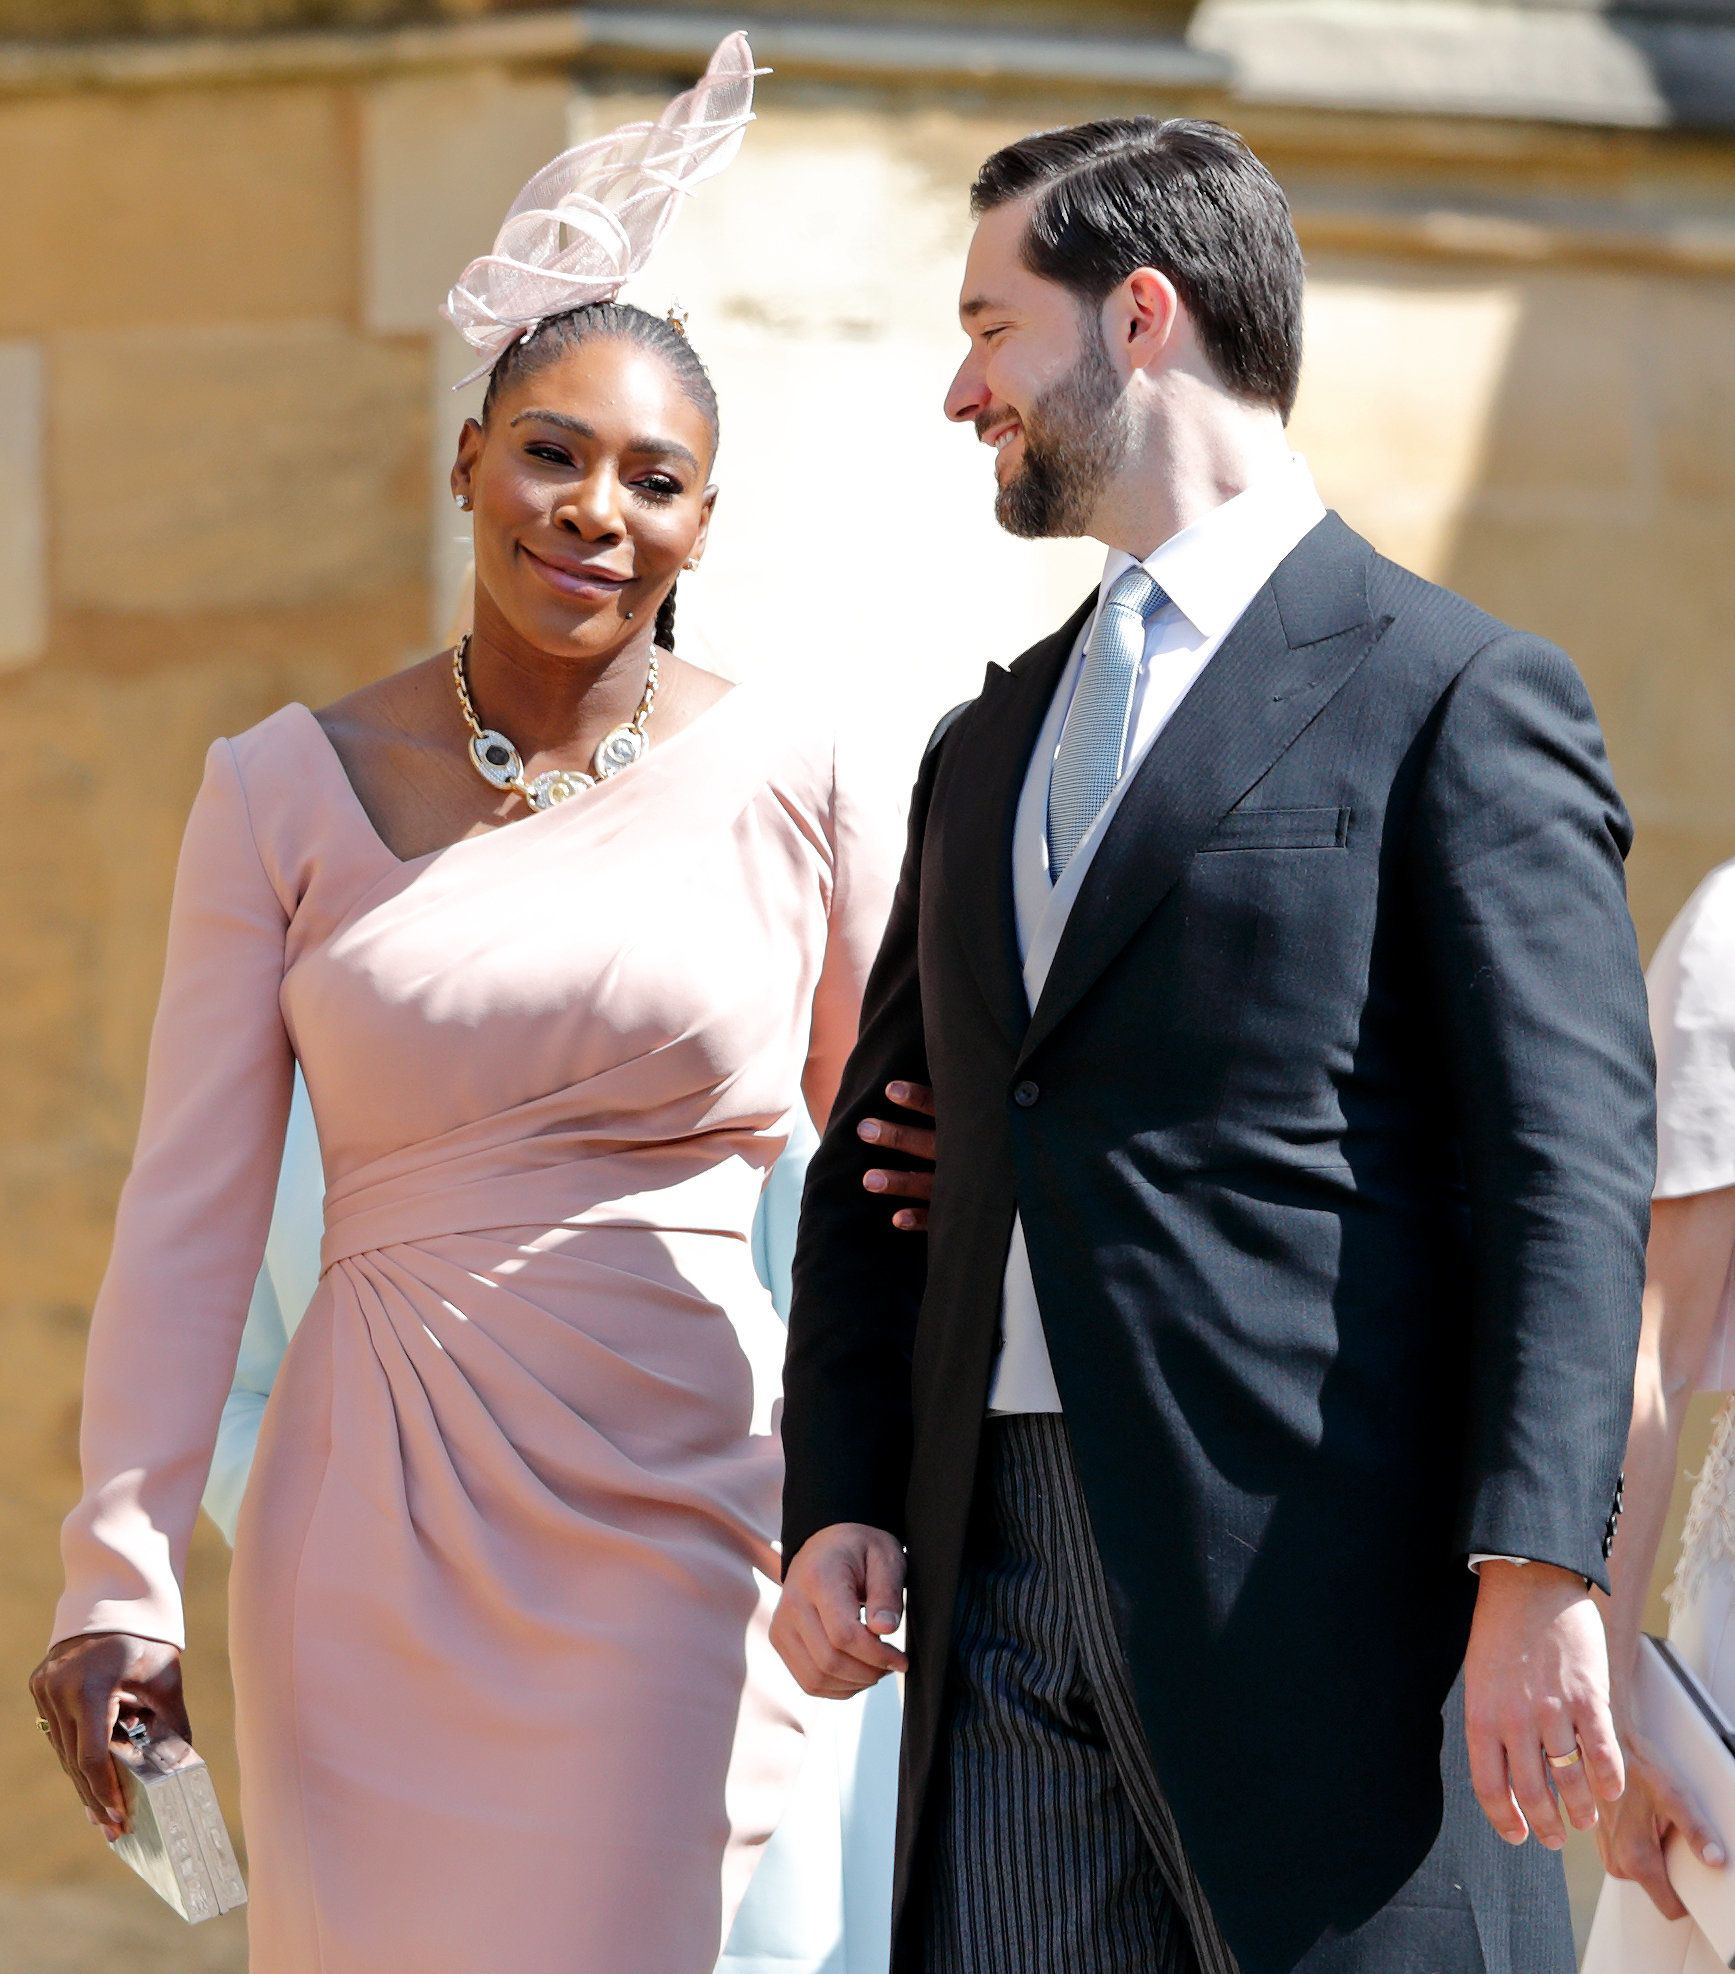 Alexis Ohanian's Video Tribute To Wife Serena Williams Is A Real